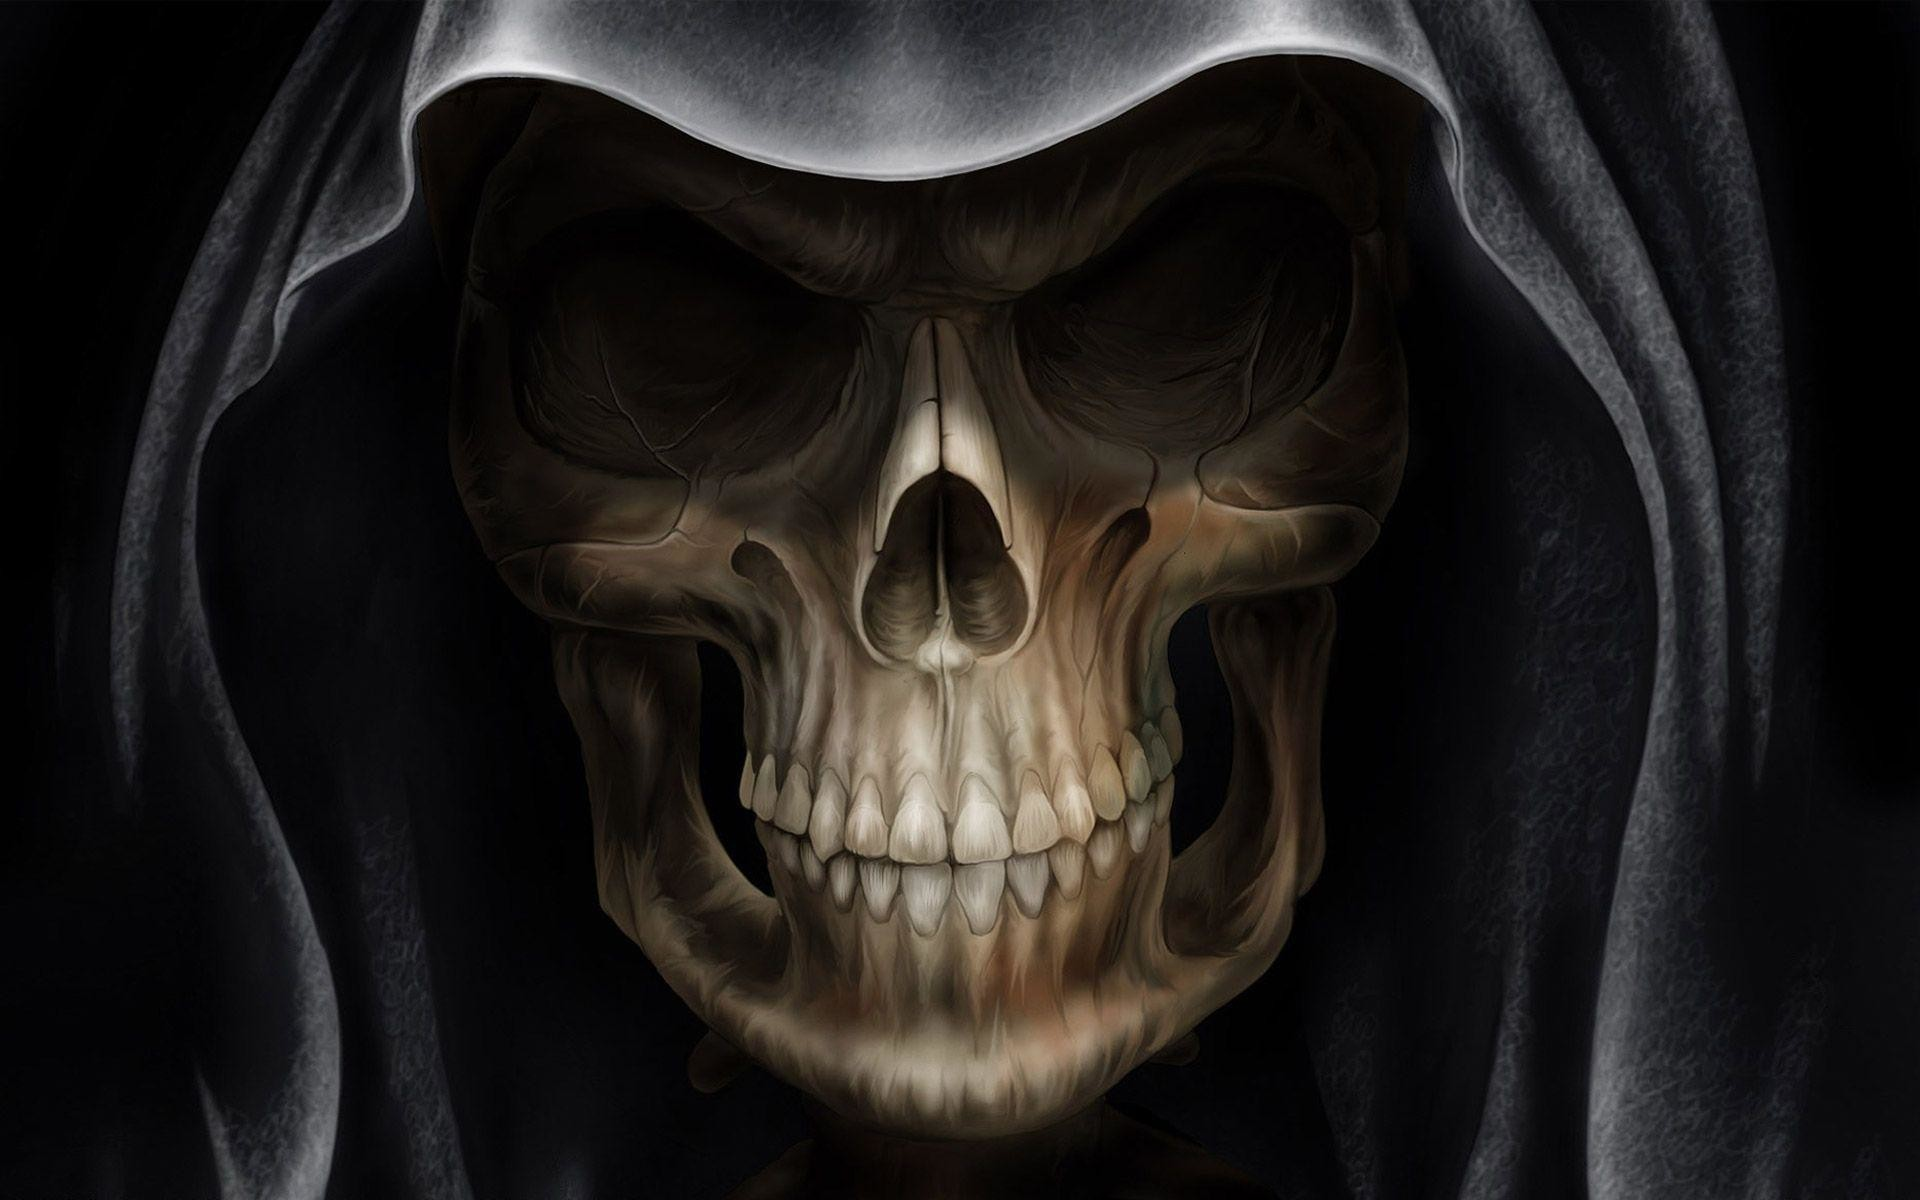 1920x1200  Skull Wallpapers - Full HD wallpaper search - page 13